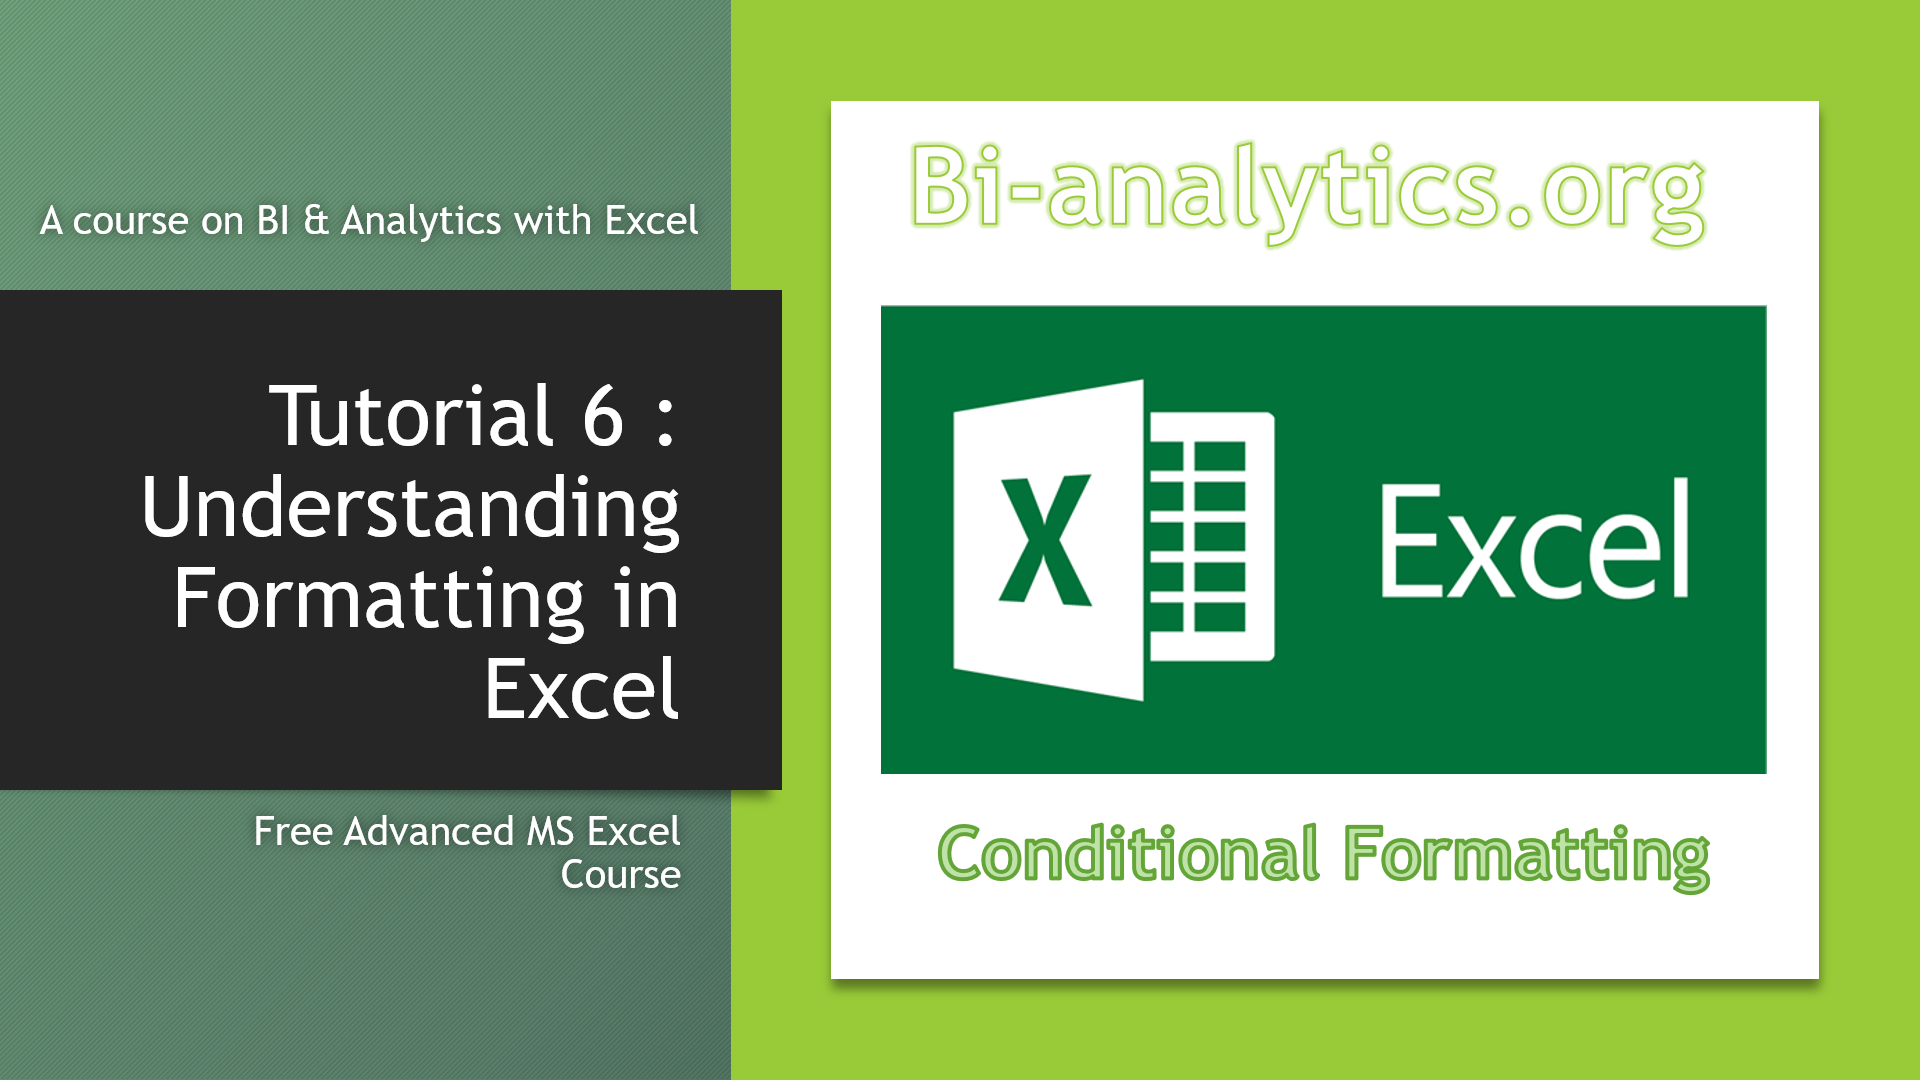 Tutorial 6 Applying Conditional Formatting : Free Advanced MS Excel course